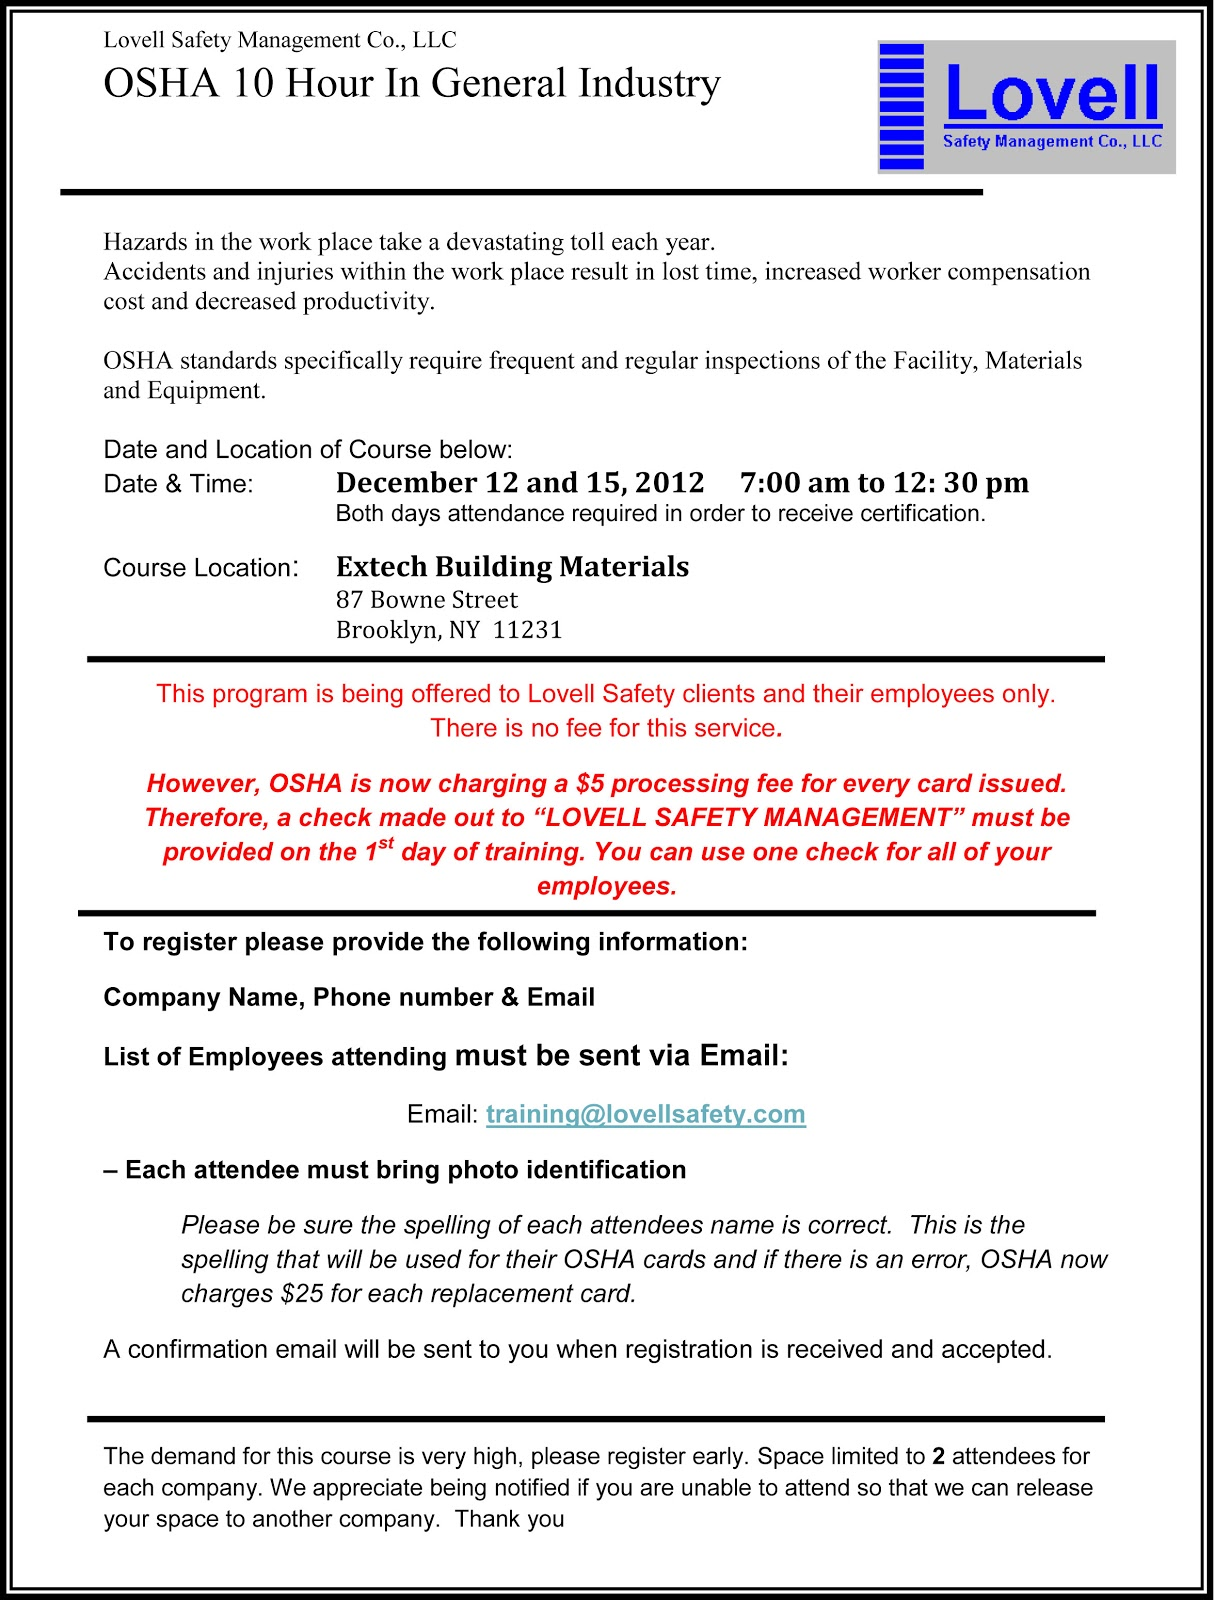 Safety Pays Osha 10 Hour General Industry Course December 12th And